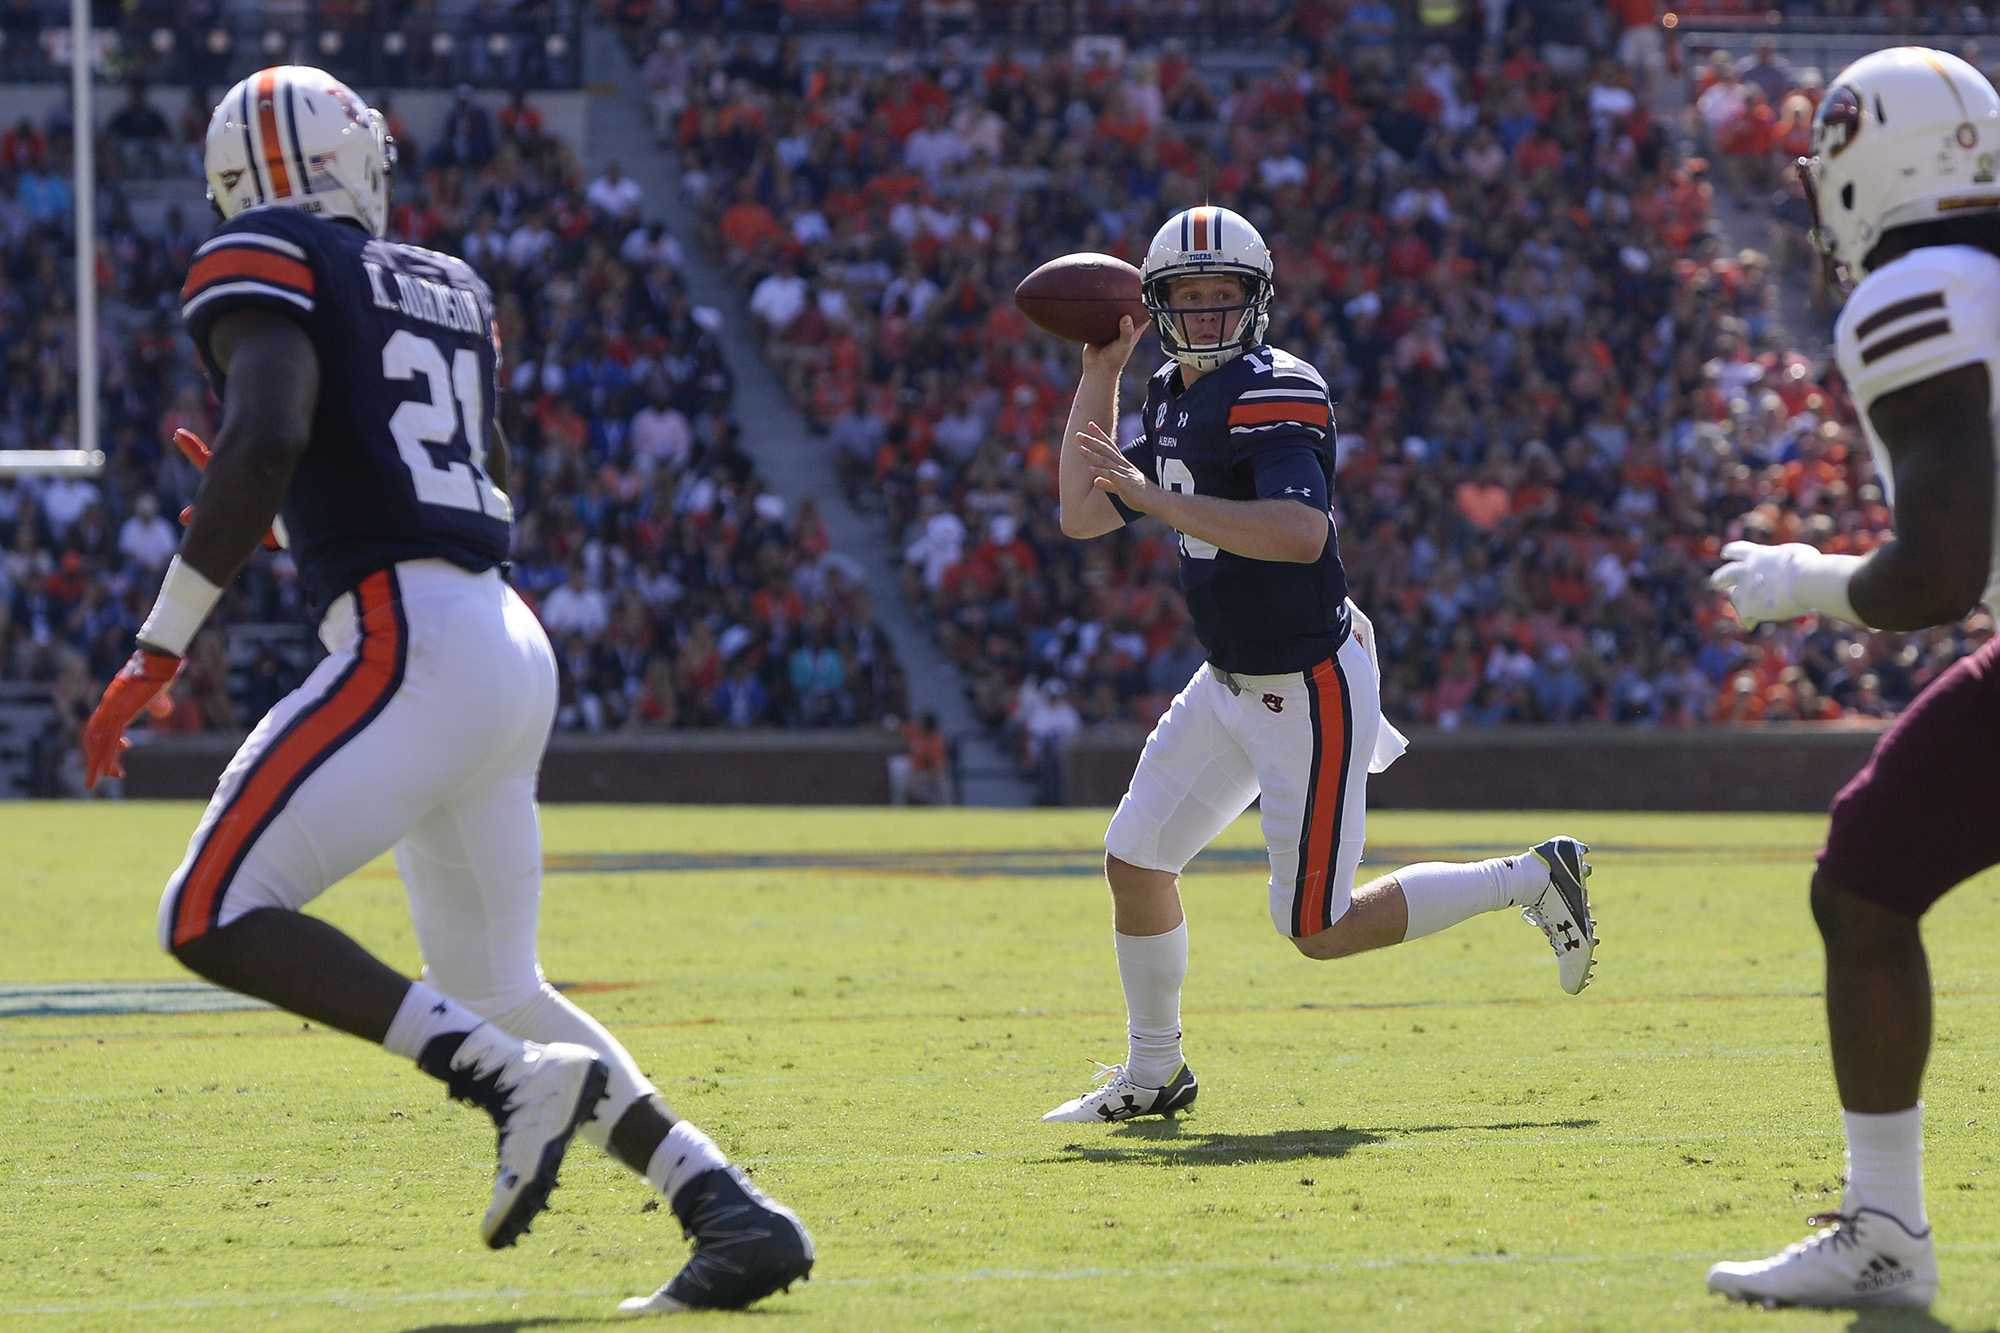 Auburn hopes to hold onto momentum from LSU win